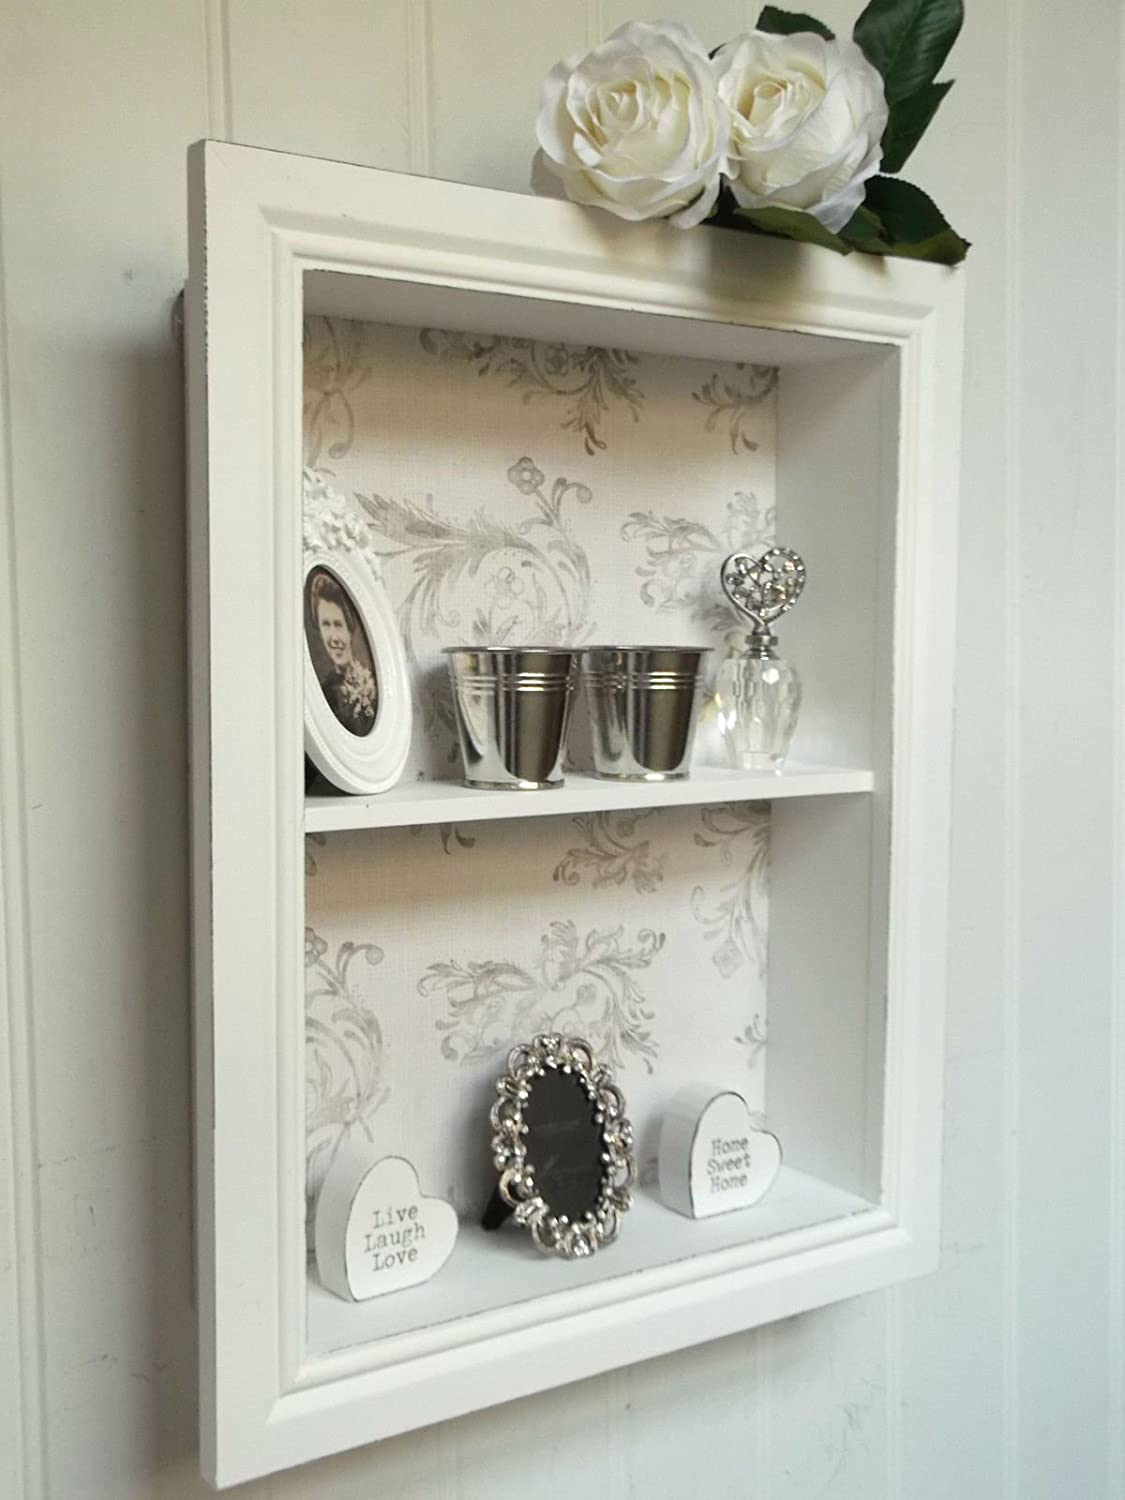 Antique white french country style carved wall shelf display unit shabby chic wall unit shelf storage cupboard display cabinet french vintage new amipublicfo Image collections